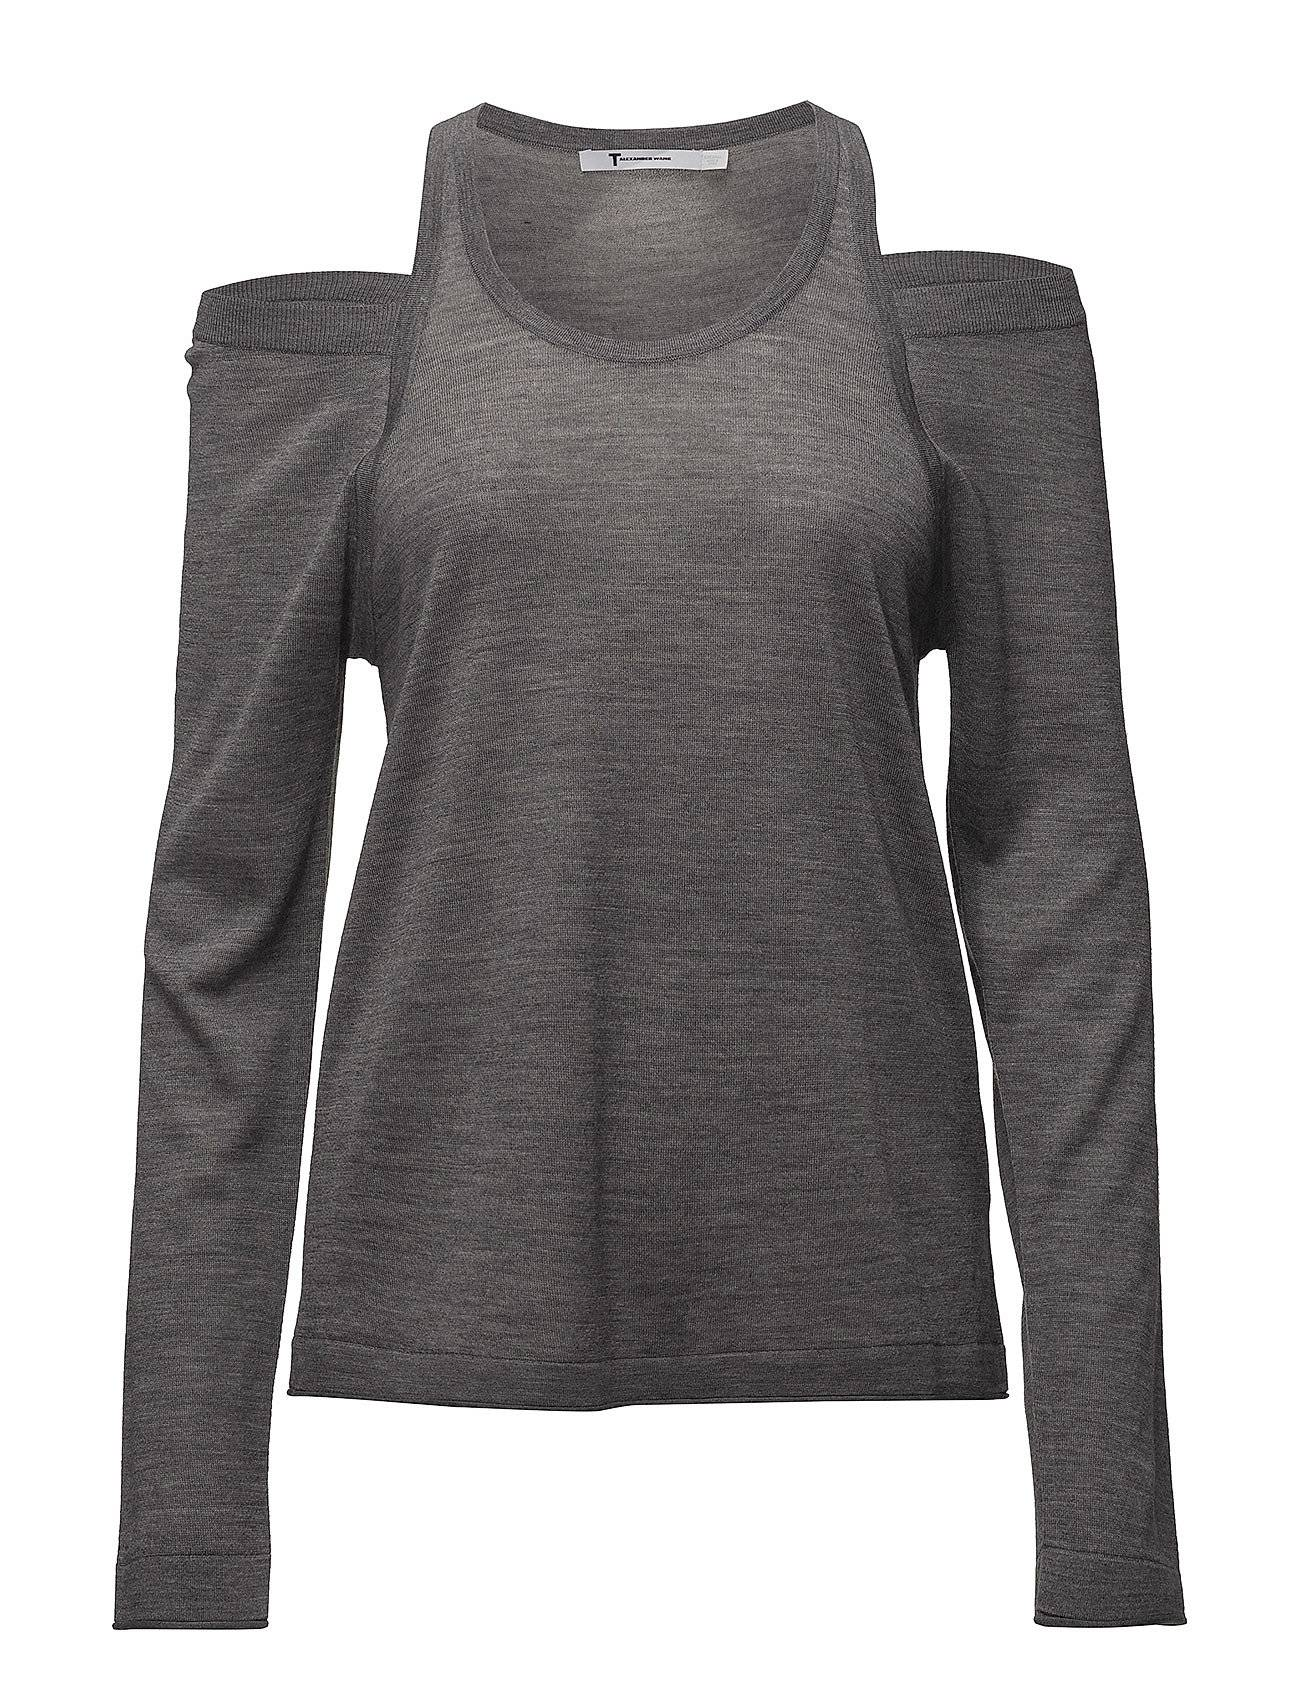 T by Alexander Wang Wash & Go Solid Cutout L/S Sweater